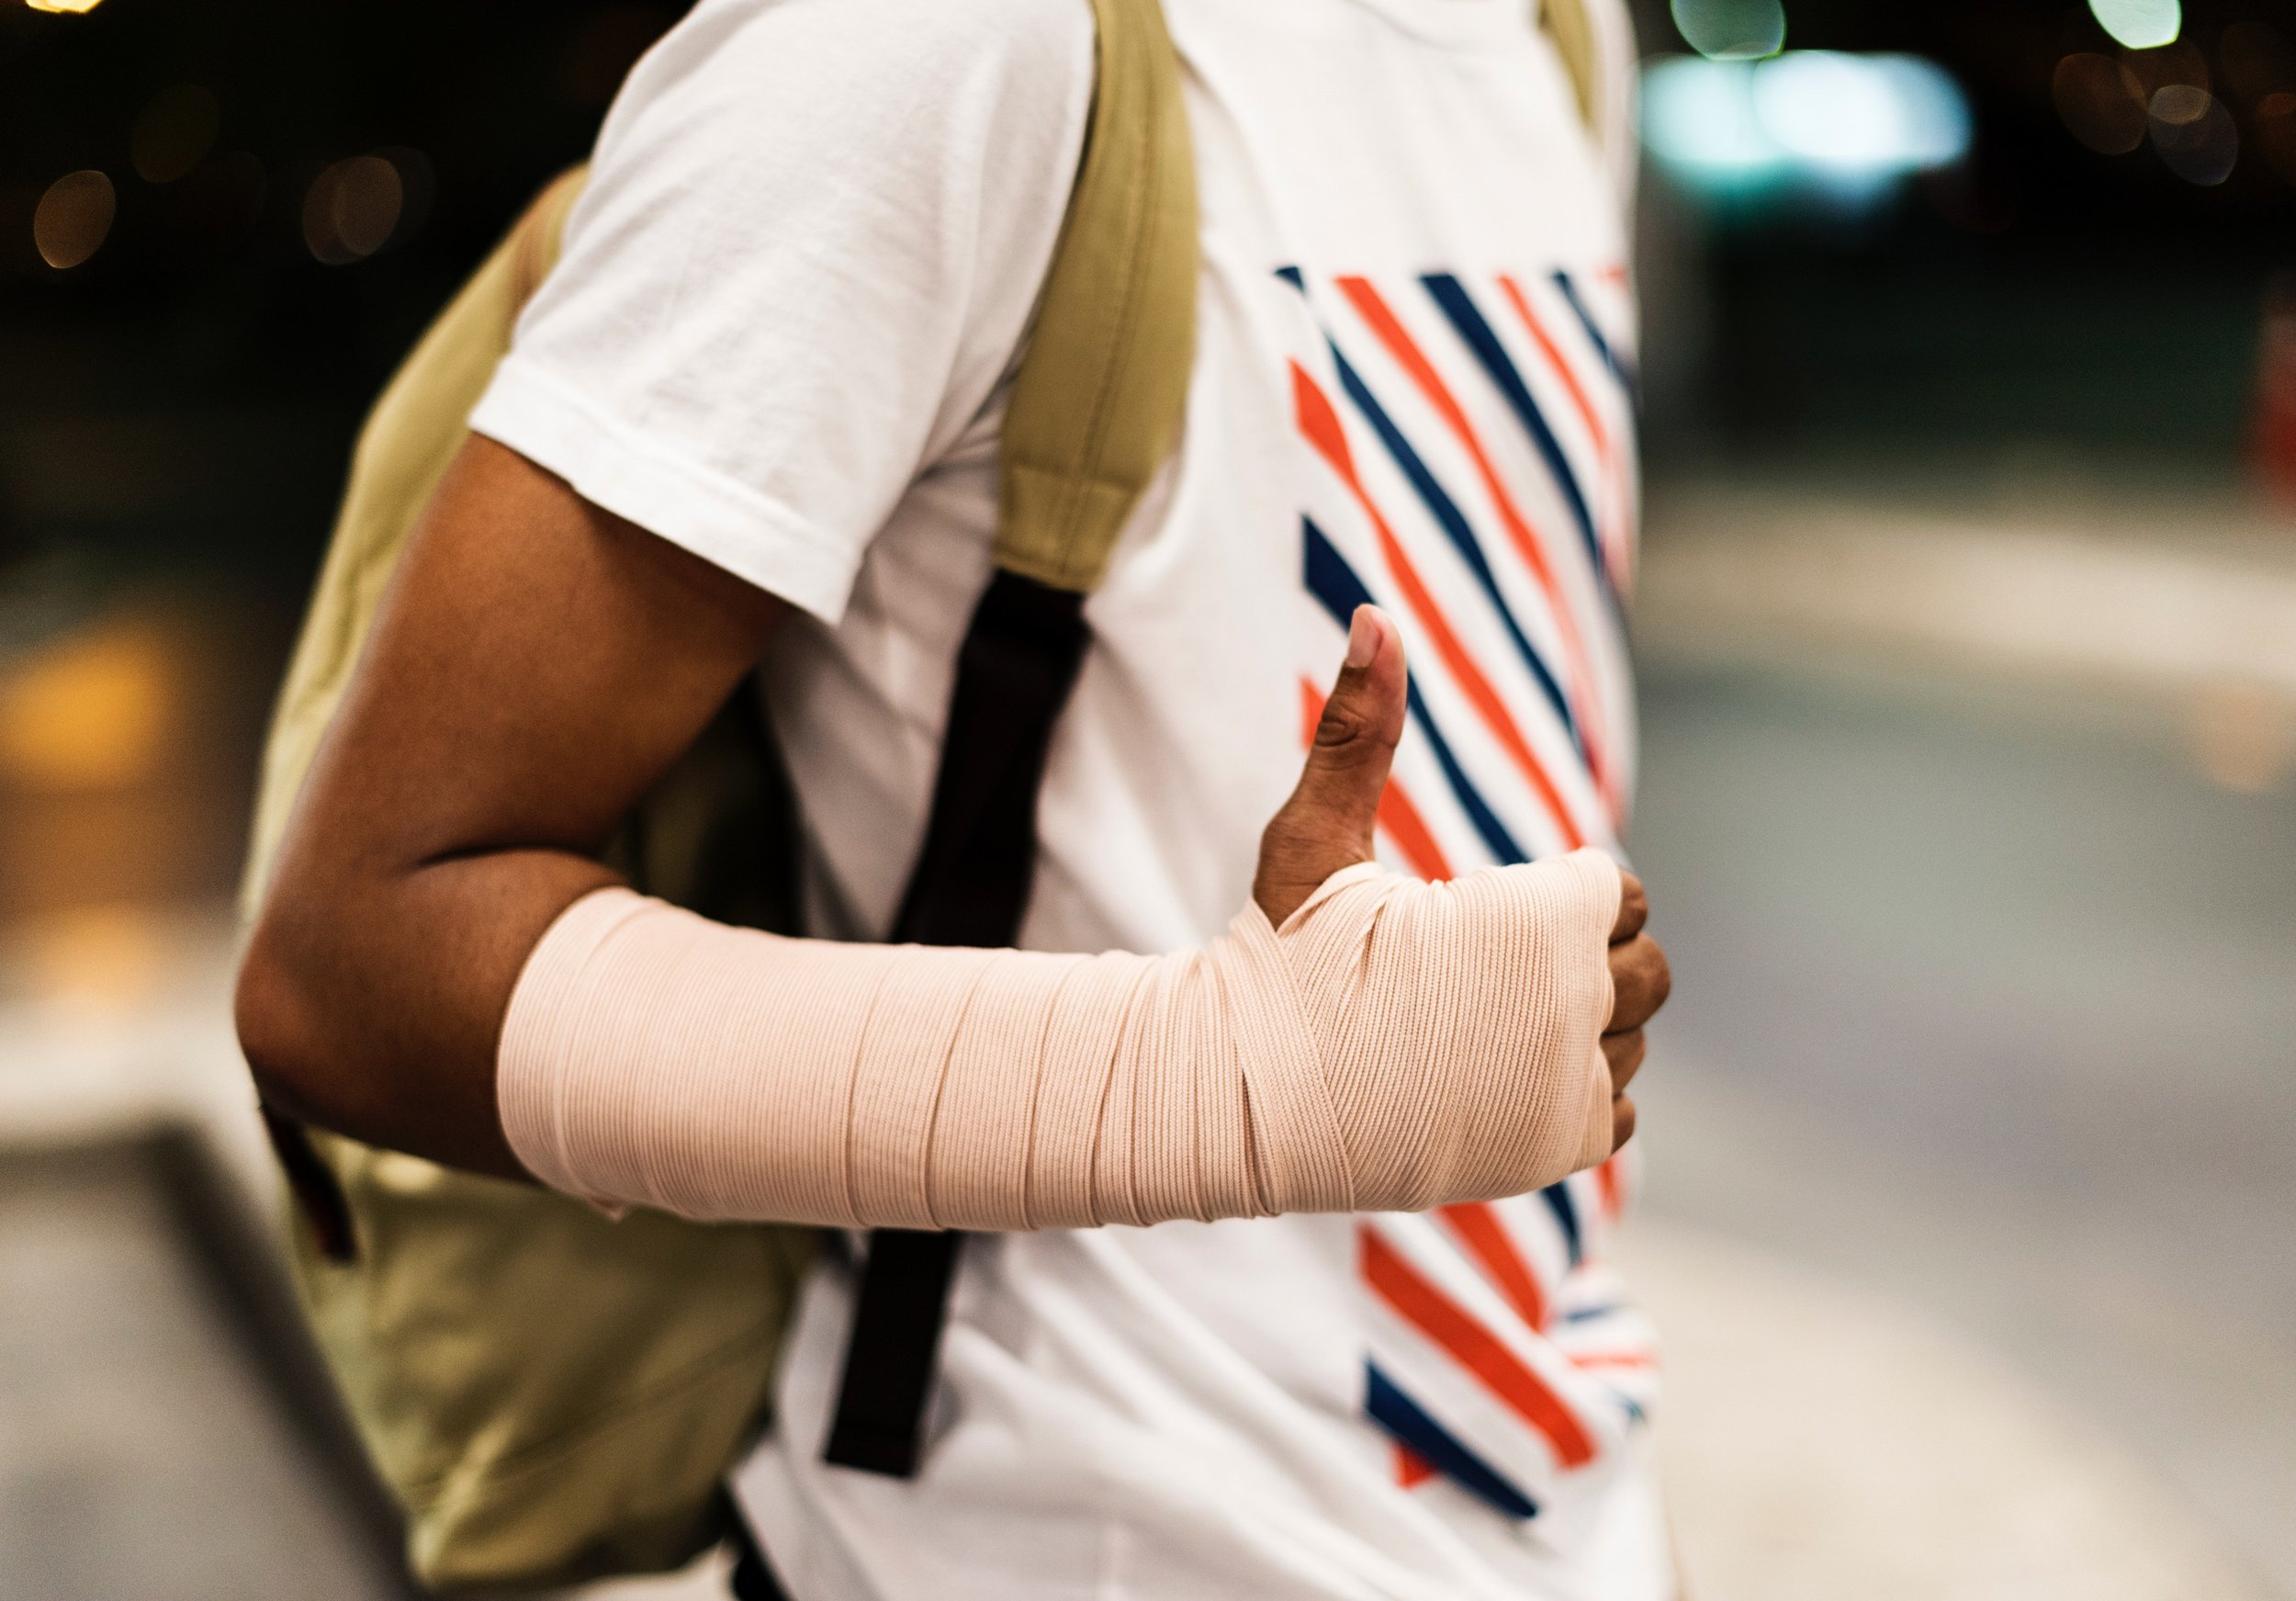 Elbow & Wrist Pain - Tennis/Golfers Elbow in active individuals or wrist pain with desk jobs is very common. We use a variety of manual and exercise therapy techniques to ensure that you be free from your symptoms and are able to get back to activity.